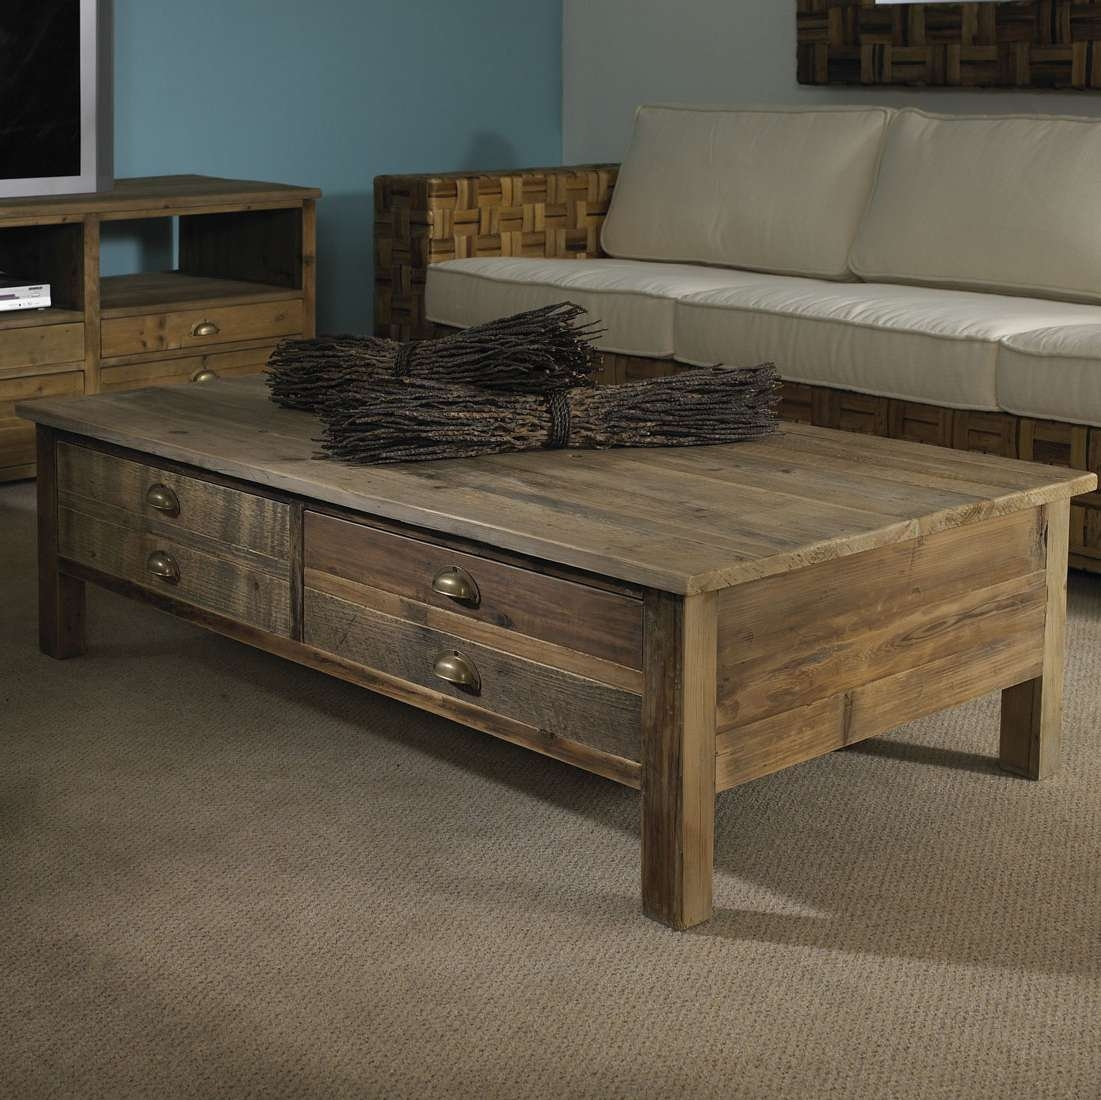 Most Popular Hardwood Coffee Tables With Storage In Deluxe Storage Together With 5 Houzz Reclaimed Wood Coffee Tables (View 17 of 20)